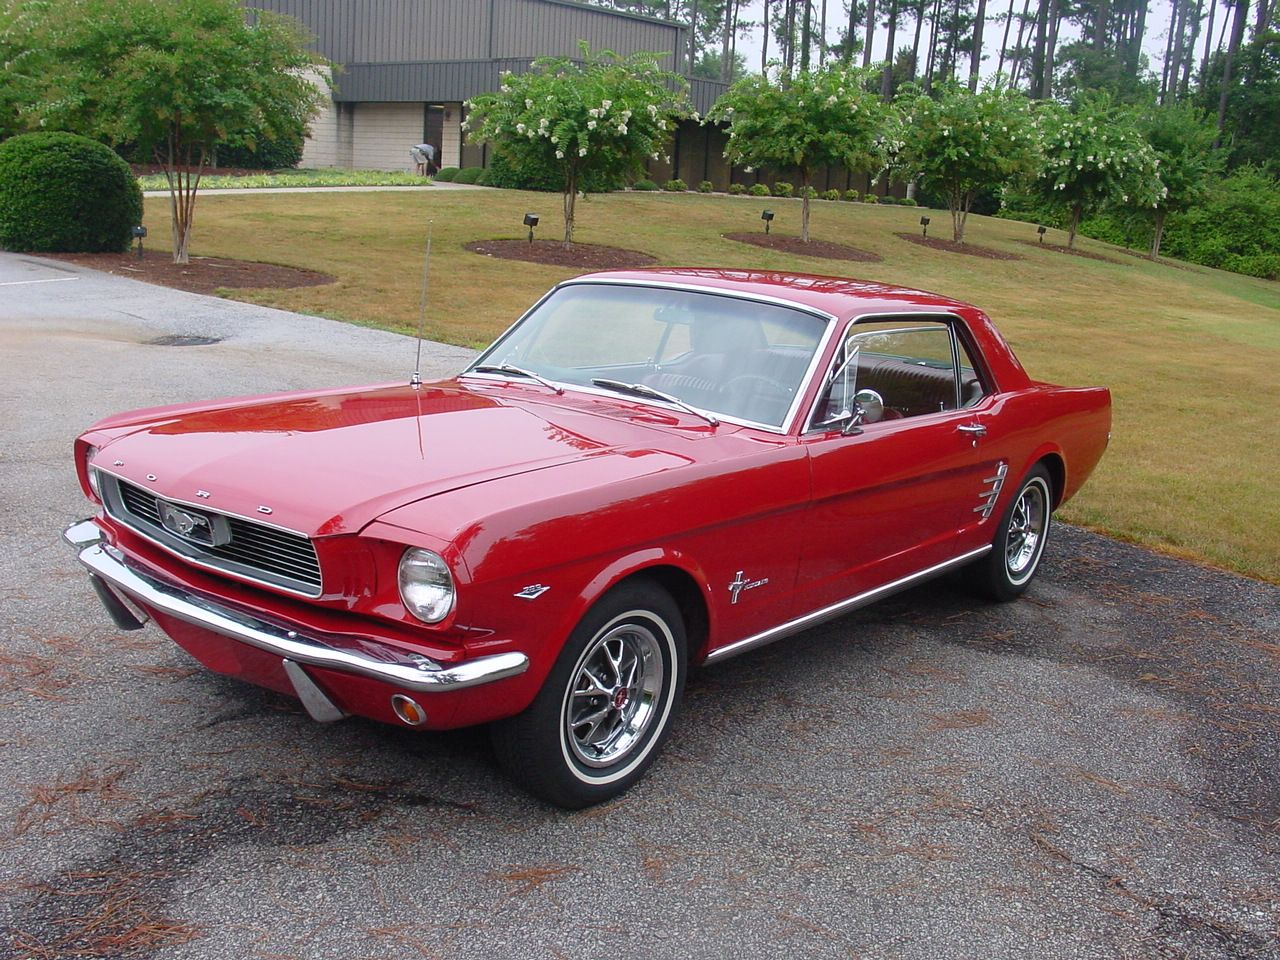 1965 candy apple red mustang i almost bought this car but couldnt afford it if i get rich i will buy it yet